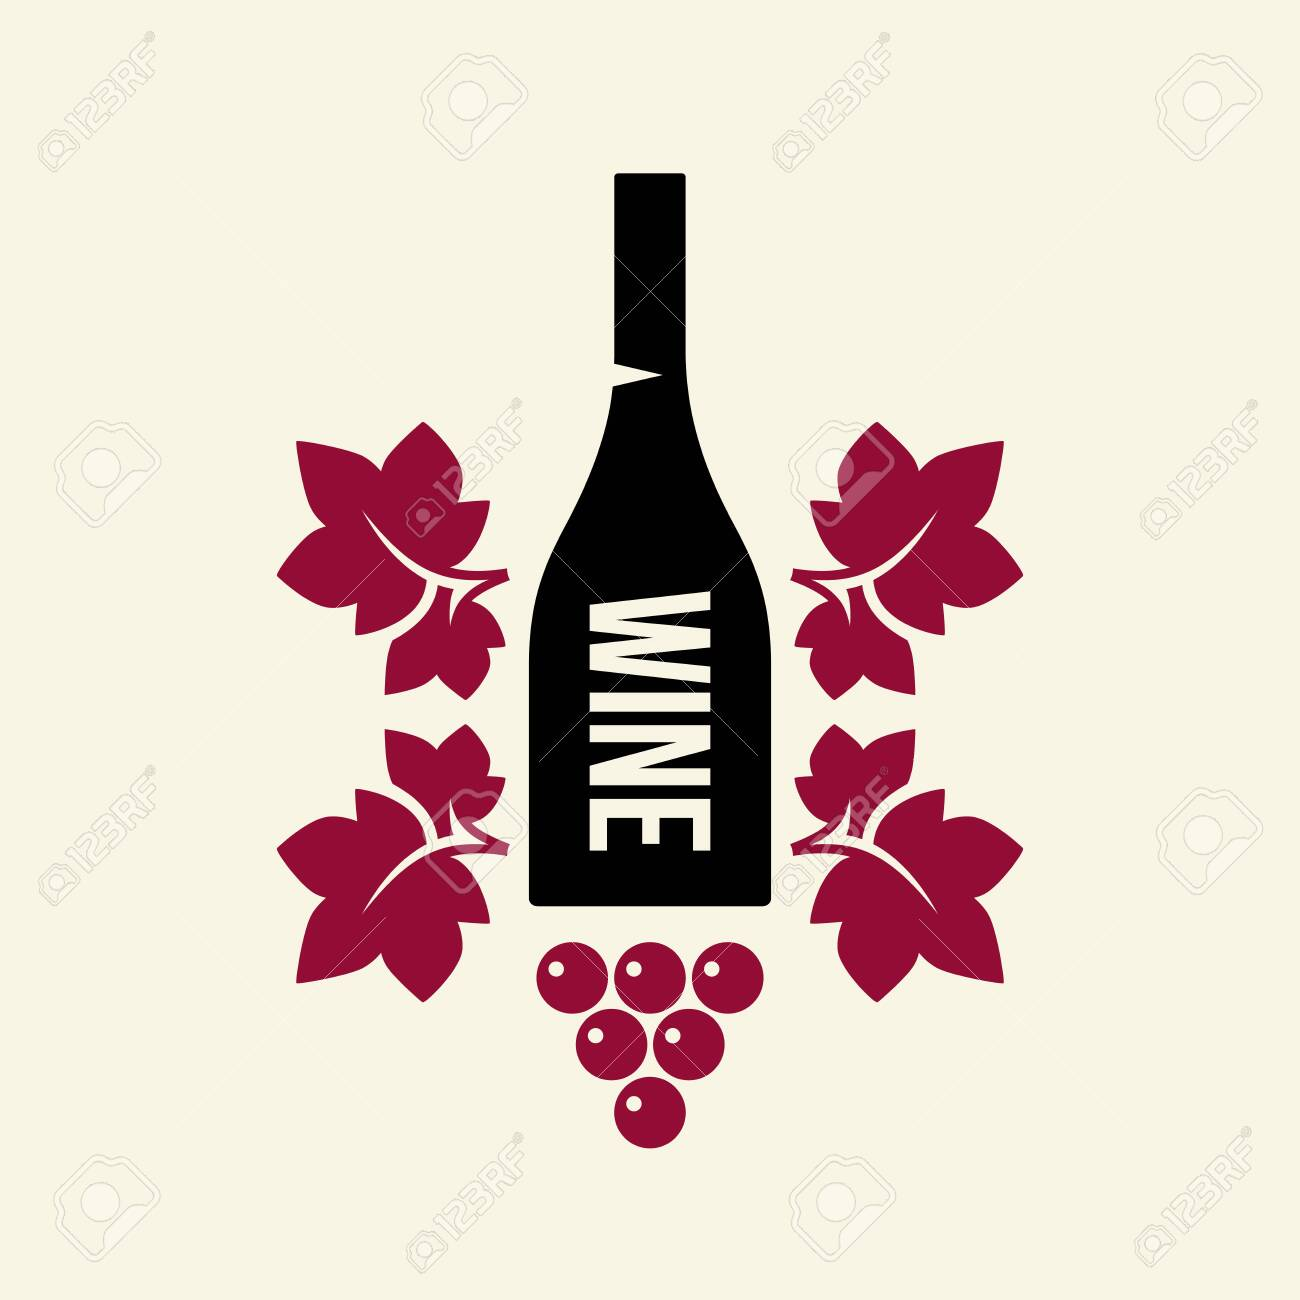 Modern wine vector logo sign for tavern, restaurant, house, shop, store, club and cellar isolated on light background. Premium quality vinery logotype illustration. Fashion brand badge design template. - 120438775